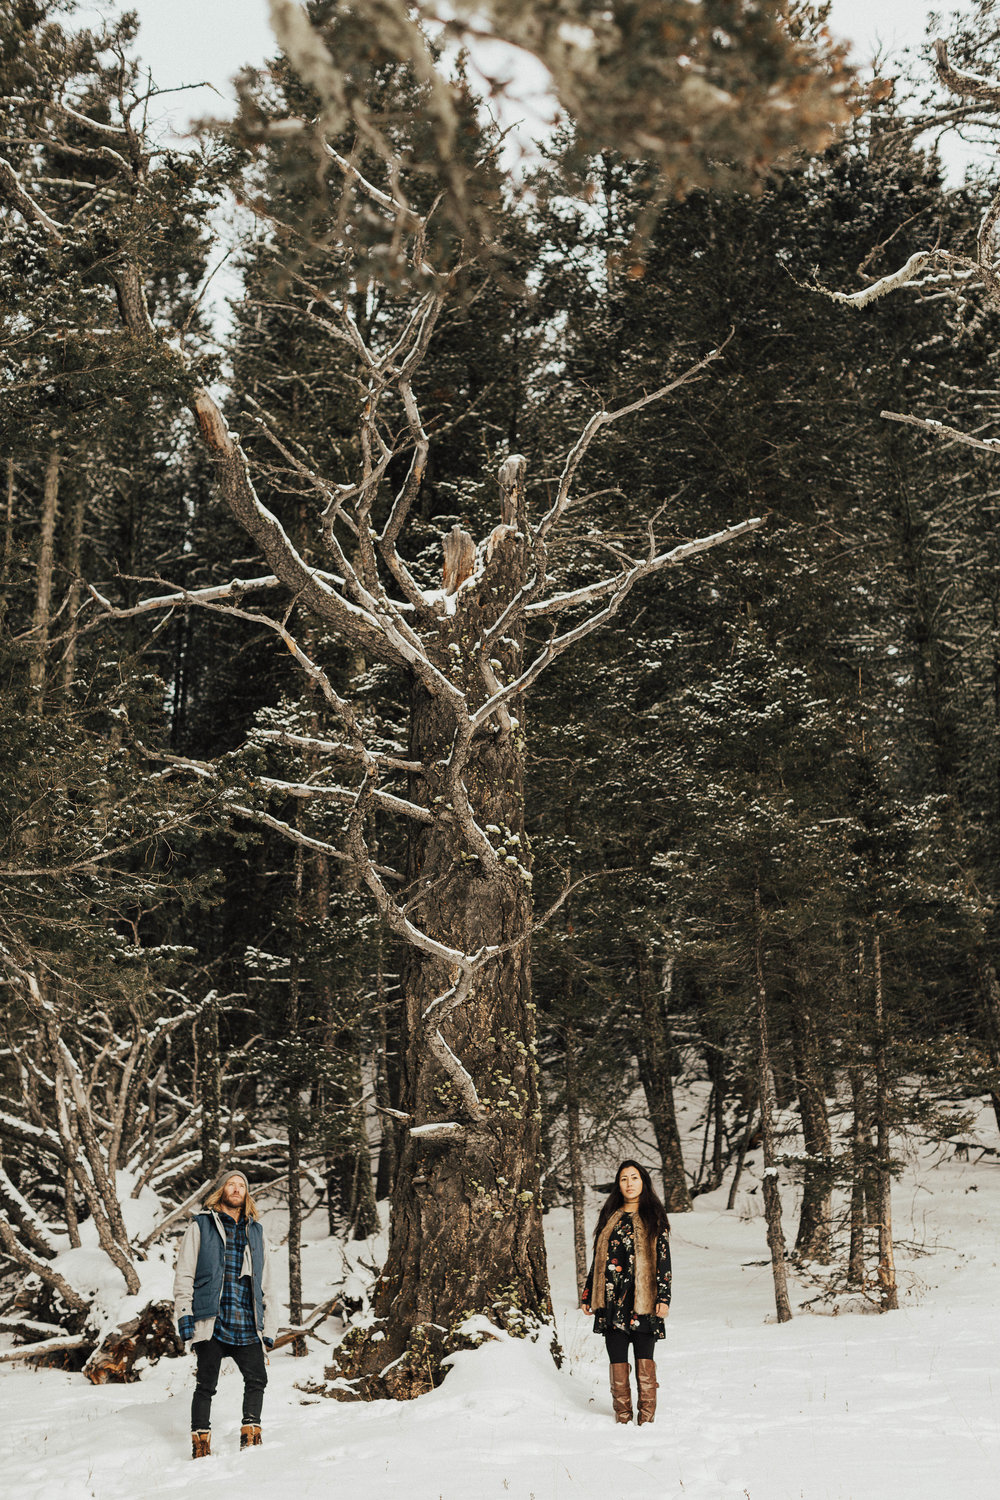 Banff Engagement Photographer - Winter Mountain Adventure Engagement Session - Michelle Larmand Photography-078